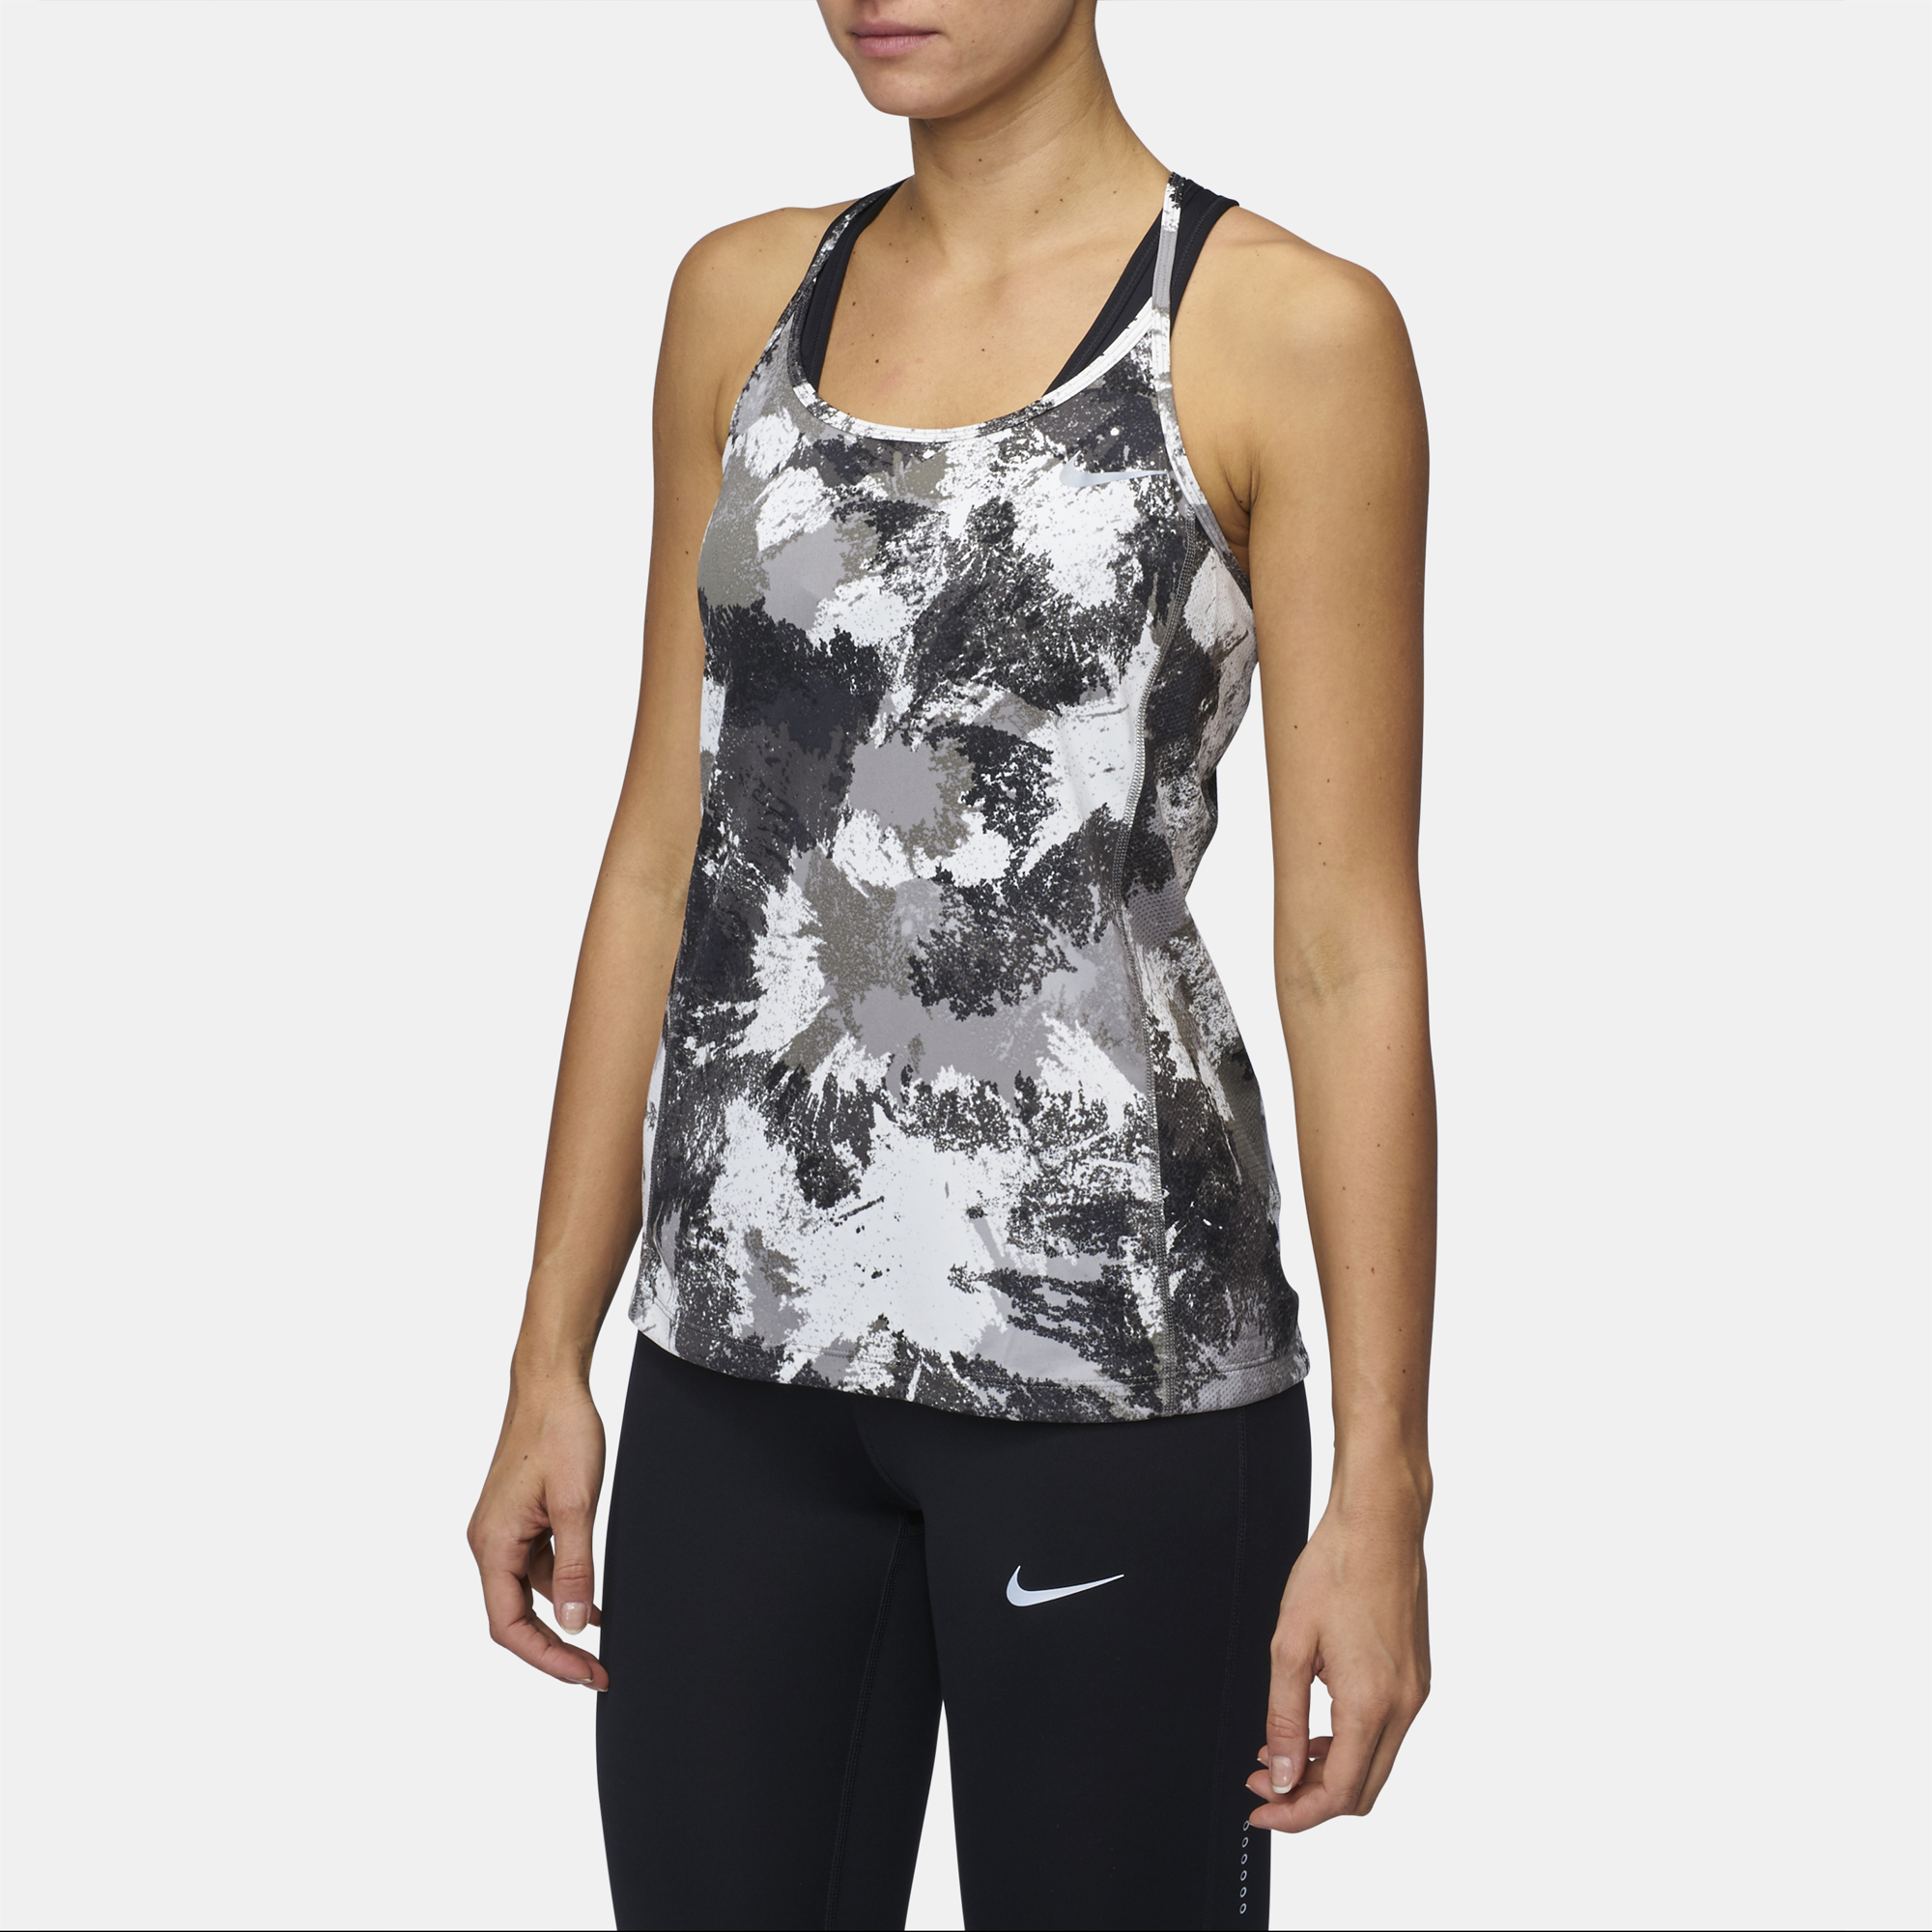 506e66de74ce4 Shop Black Nike Dry Miler Running Tank Top for Womens by .